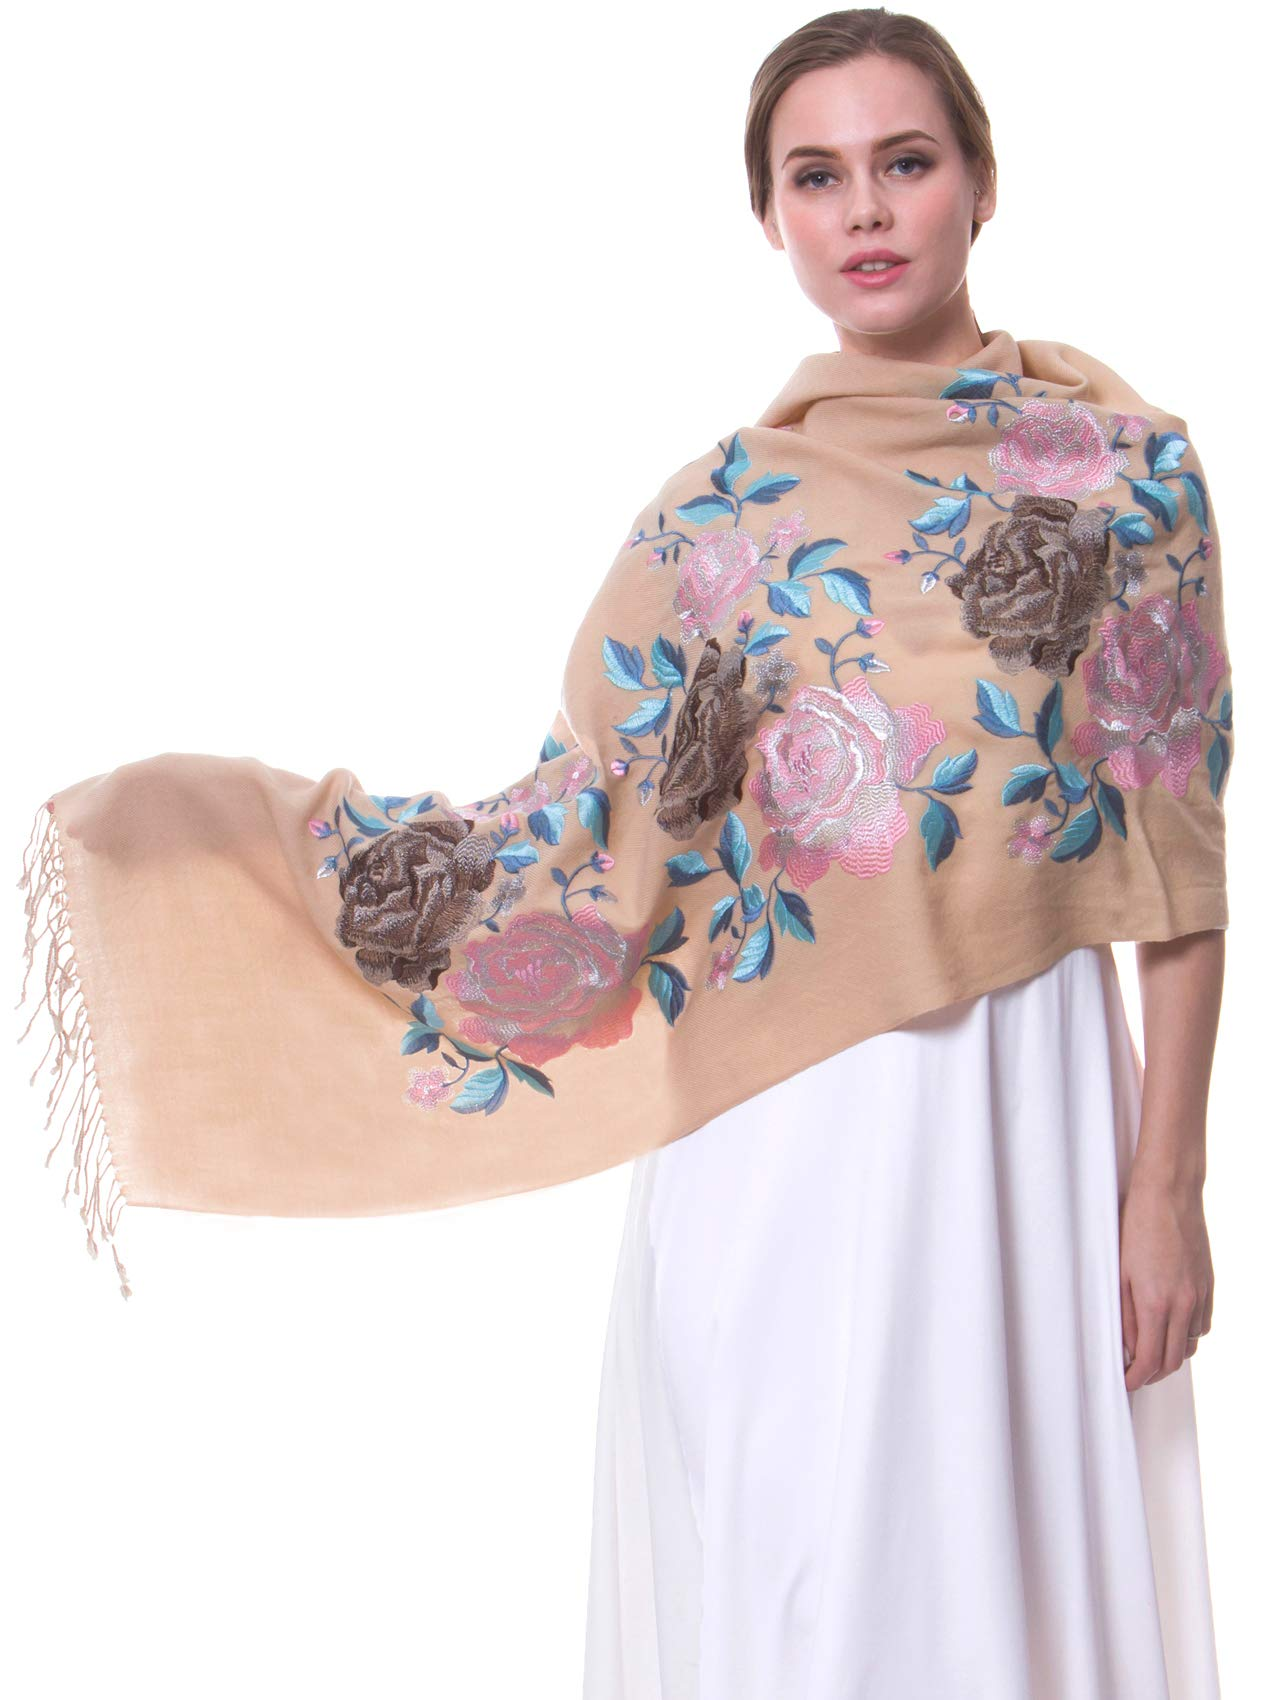 MORCOE Women's Top-class 100% Wool Delicate Embroidered Soft Long Floral Scarf Warm Wrap Party Wedding Shawl Gift ... (Beige)